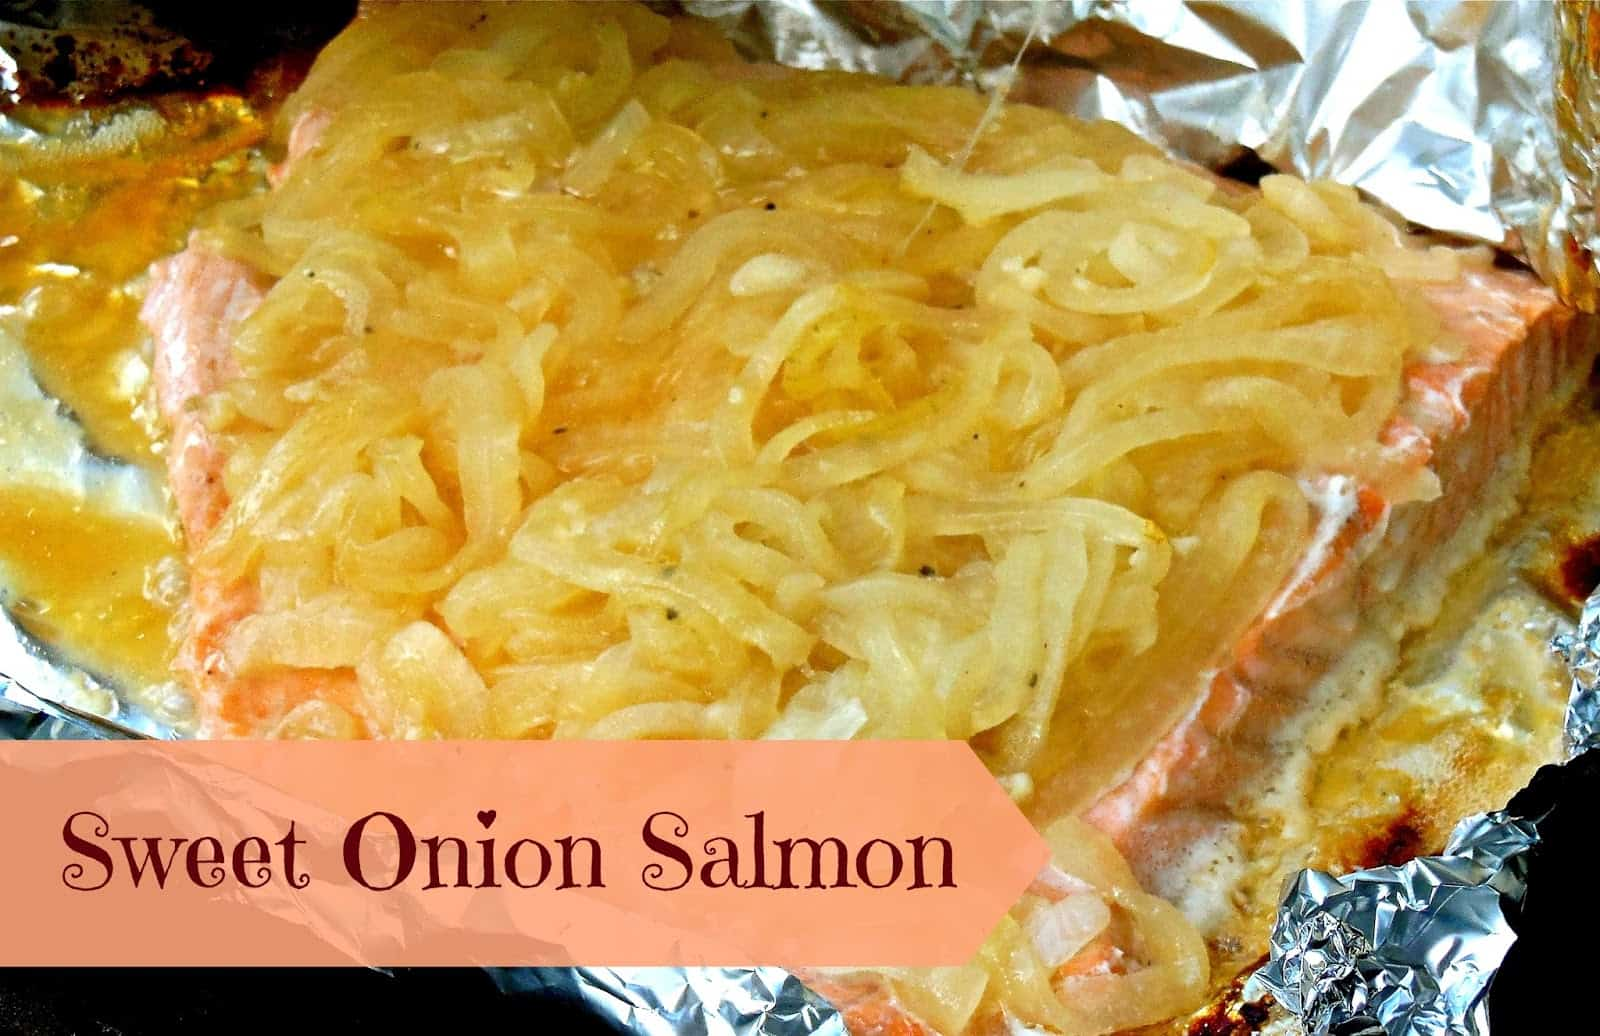 SweetOnionSalmon